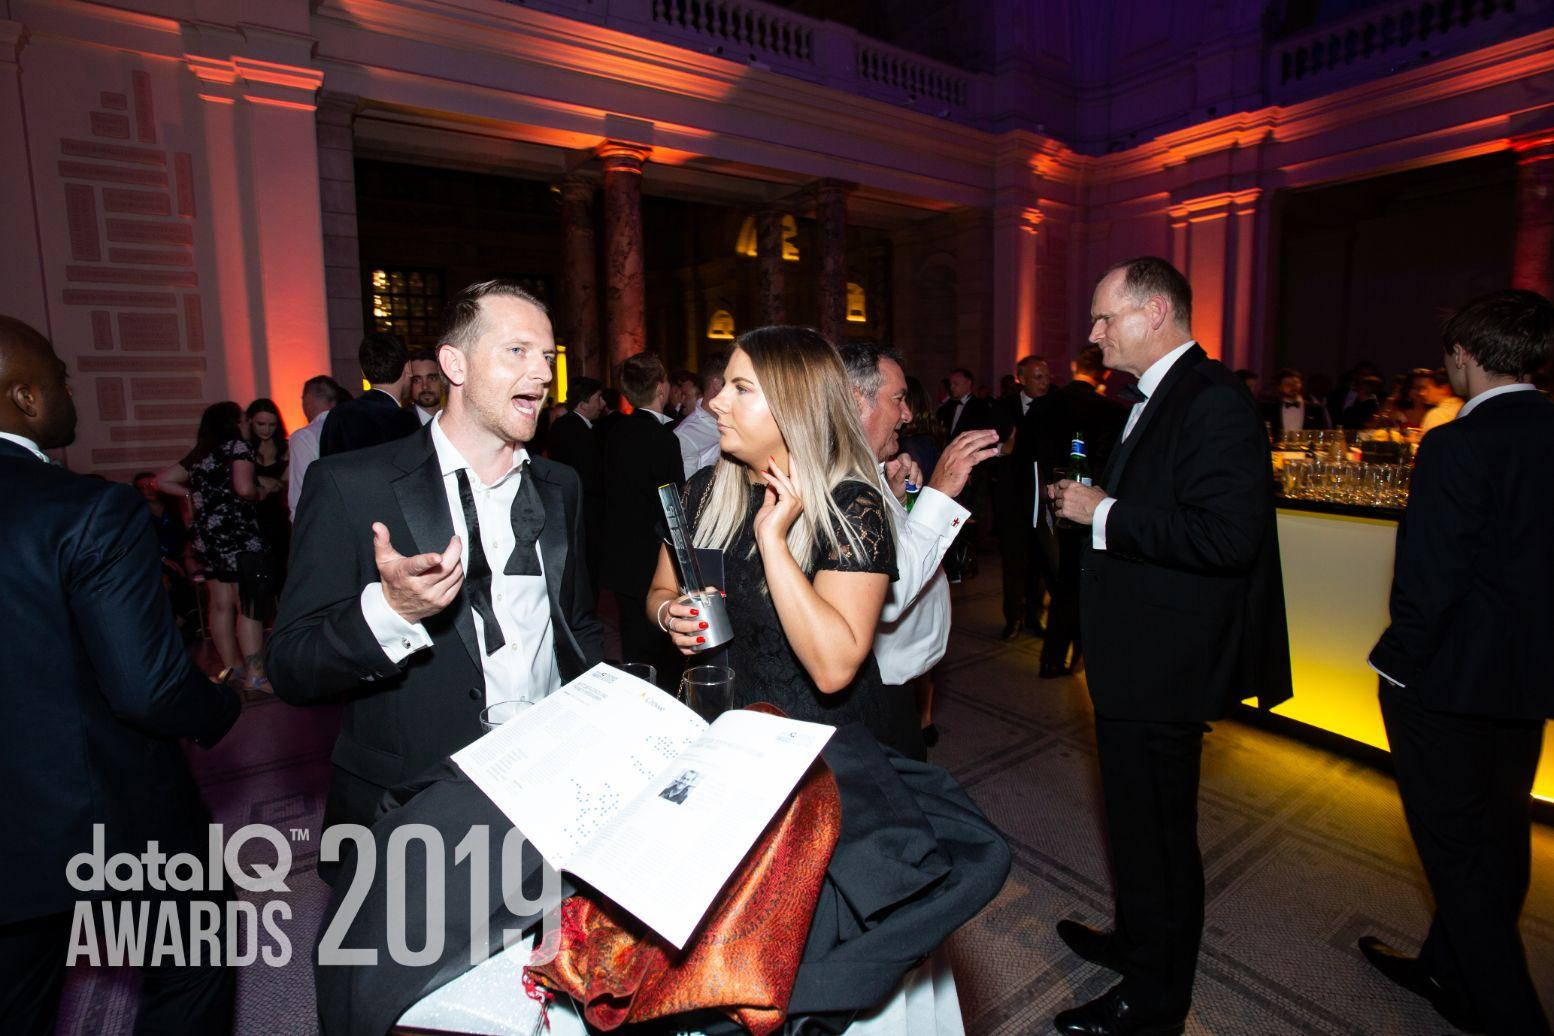 Awards 2019 Image 105